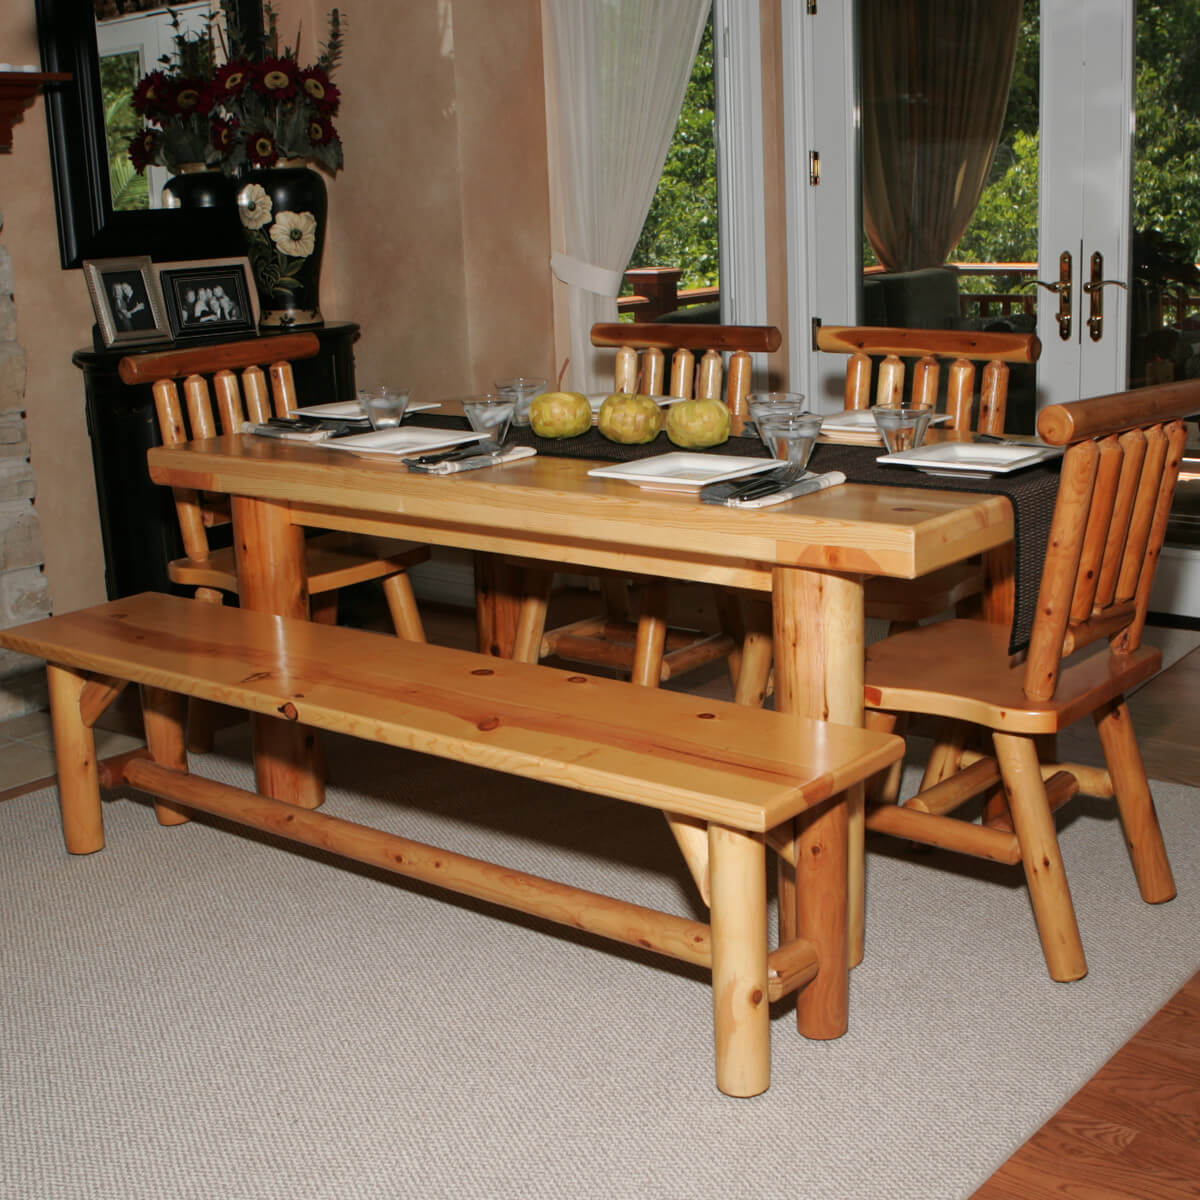 Dining Table With A Bench: 26 Dining Room Sets (Big And Small) With Bench Seating (2019